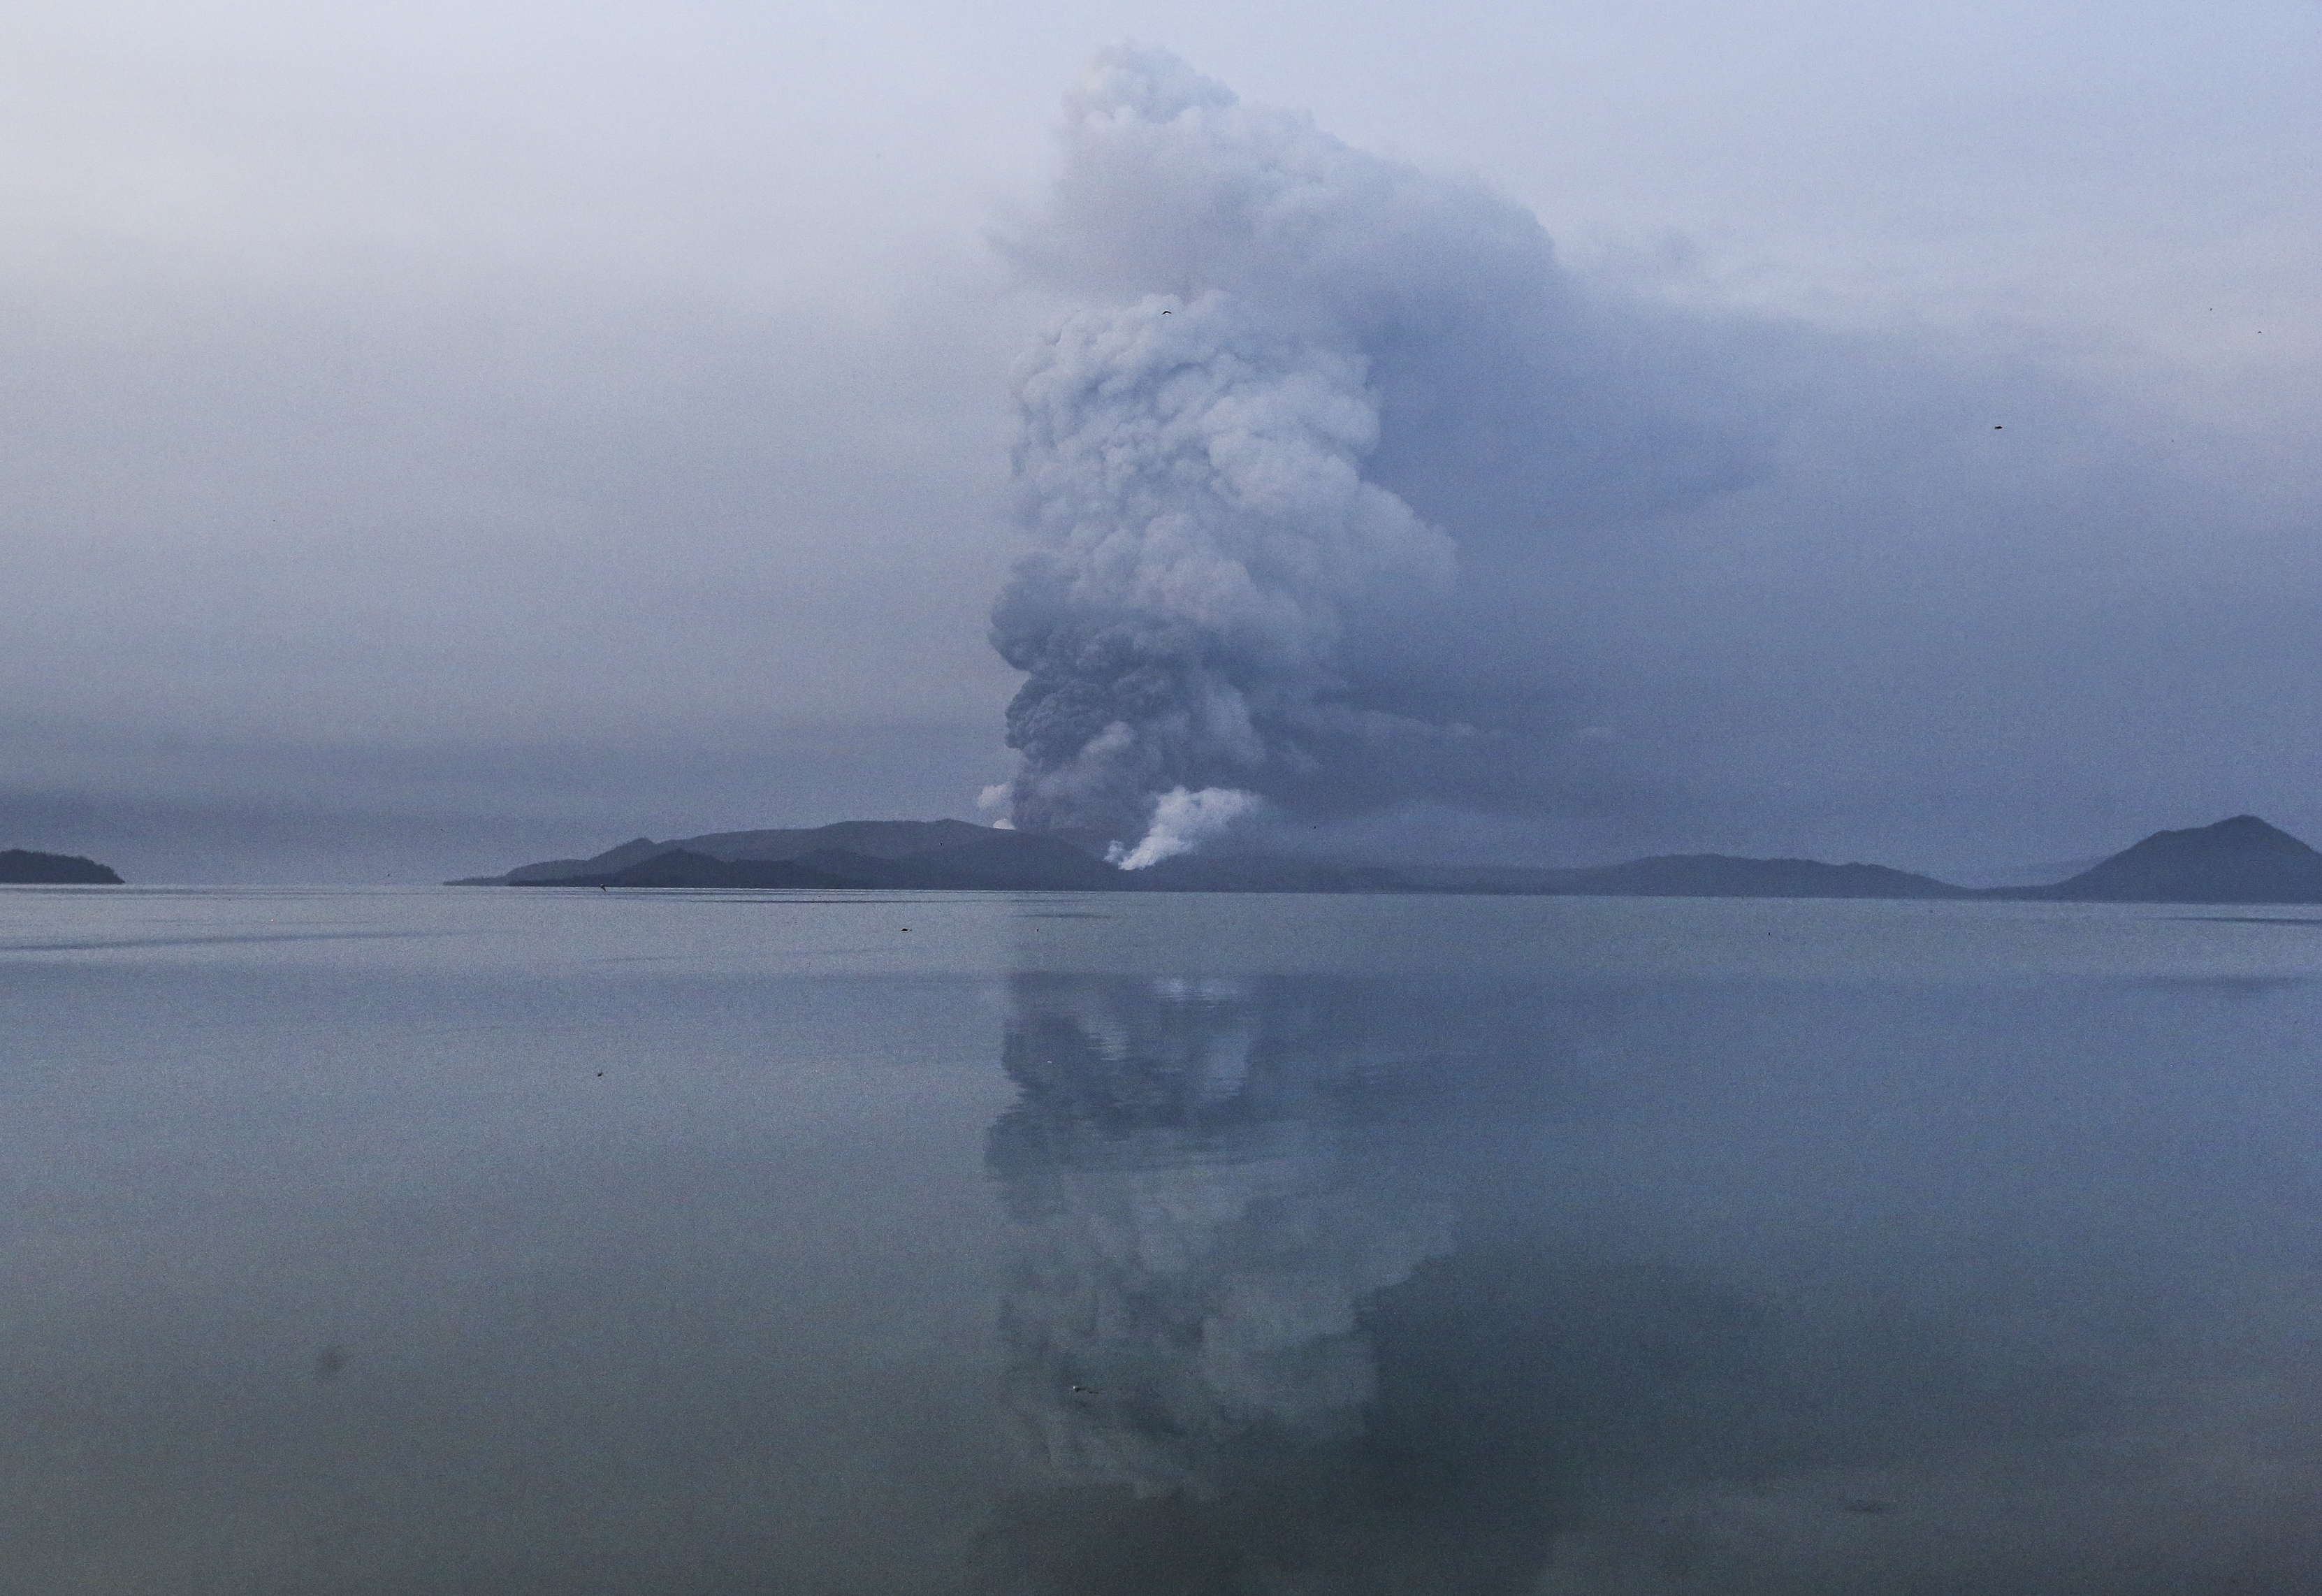 Taal volcano spews ash in view from Batangas, southern Philippines on Monday, Jan. 13, 2020. Red-hot lava gushed out hereof a volcano near the Philippine capital on Monday, as thousands of people fled the area through heavy ash. Experts warned that the eruption could get worse and plans were being made to evacuate hundreds of thousands. (AP Photo/Gerrard Carreon)